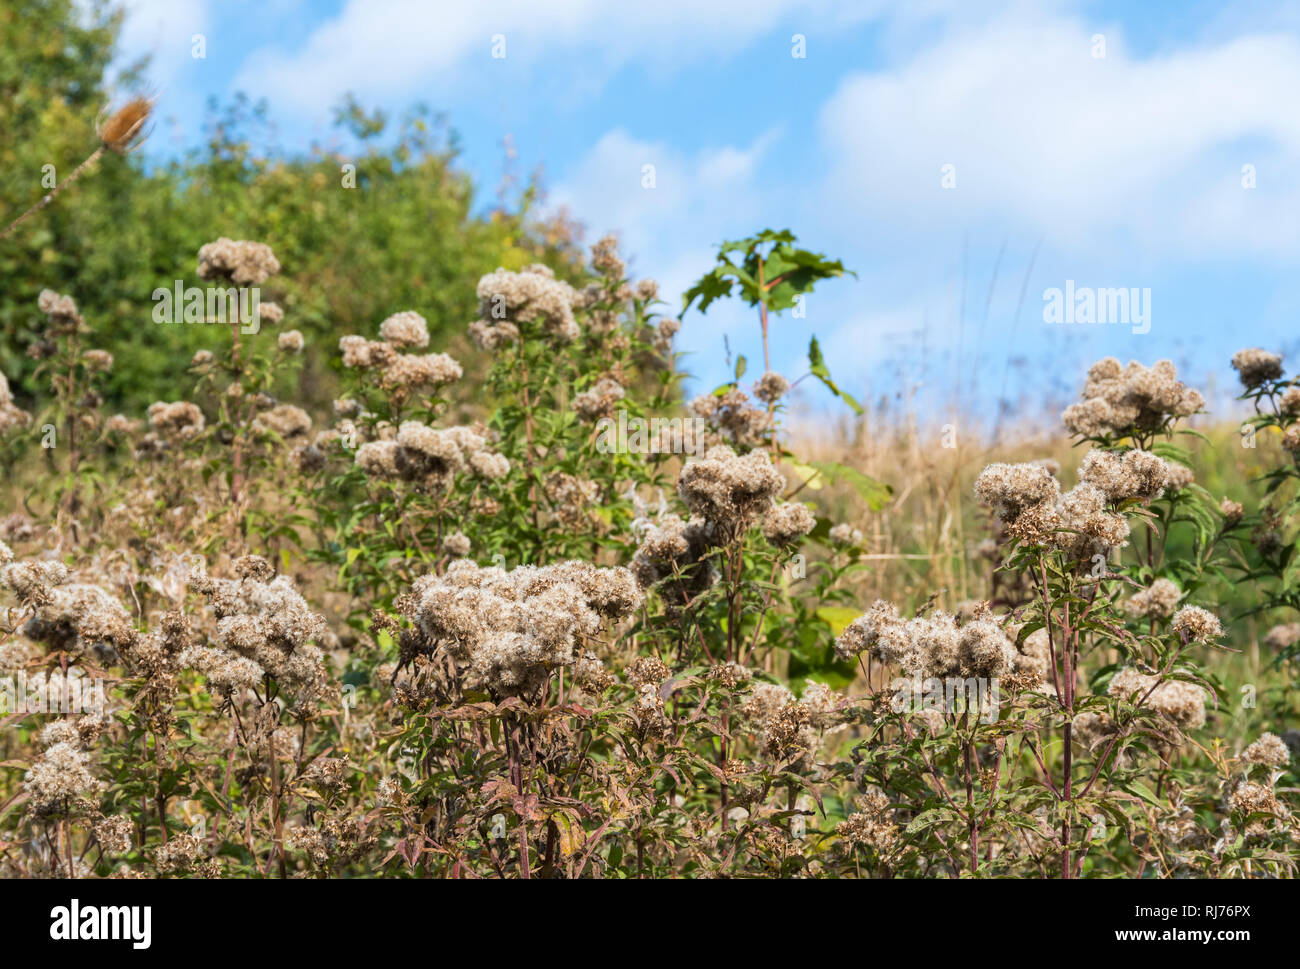 Creeping Thistle (Cirsium arvense) plant in seed growing in Autumn in the UK. - Stock Image